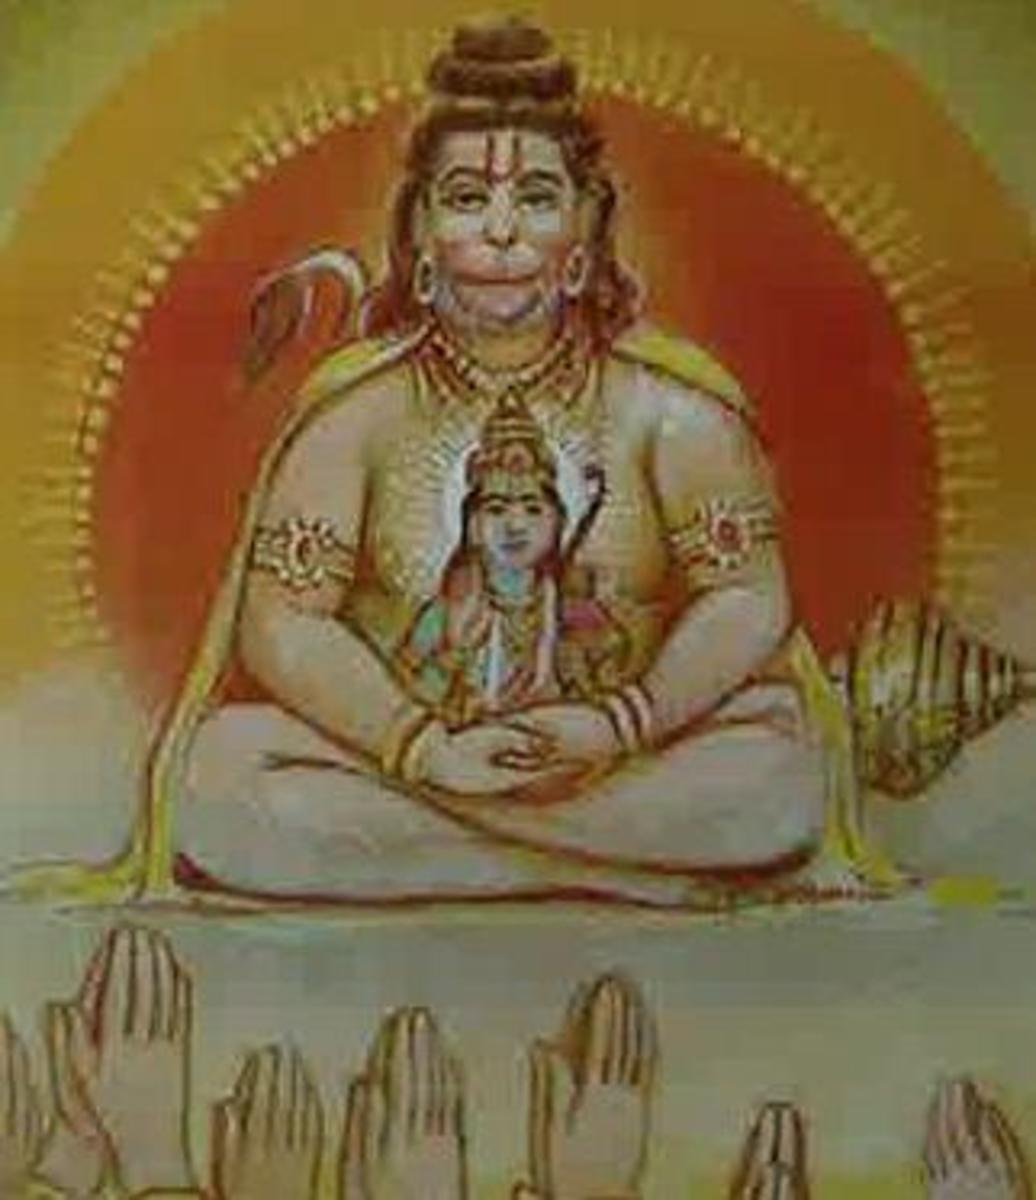 Picture depicting verse 24 of the Hanuman Chalisa